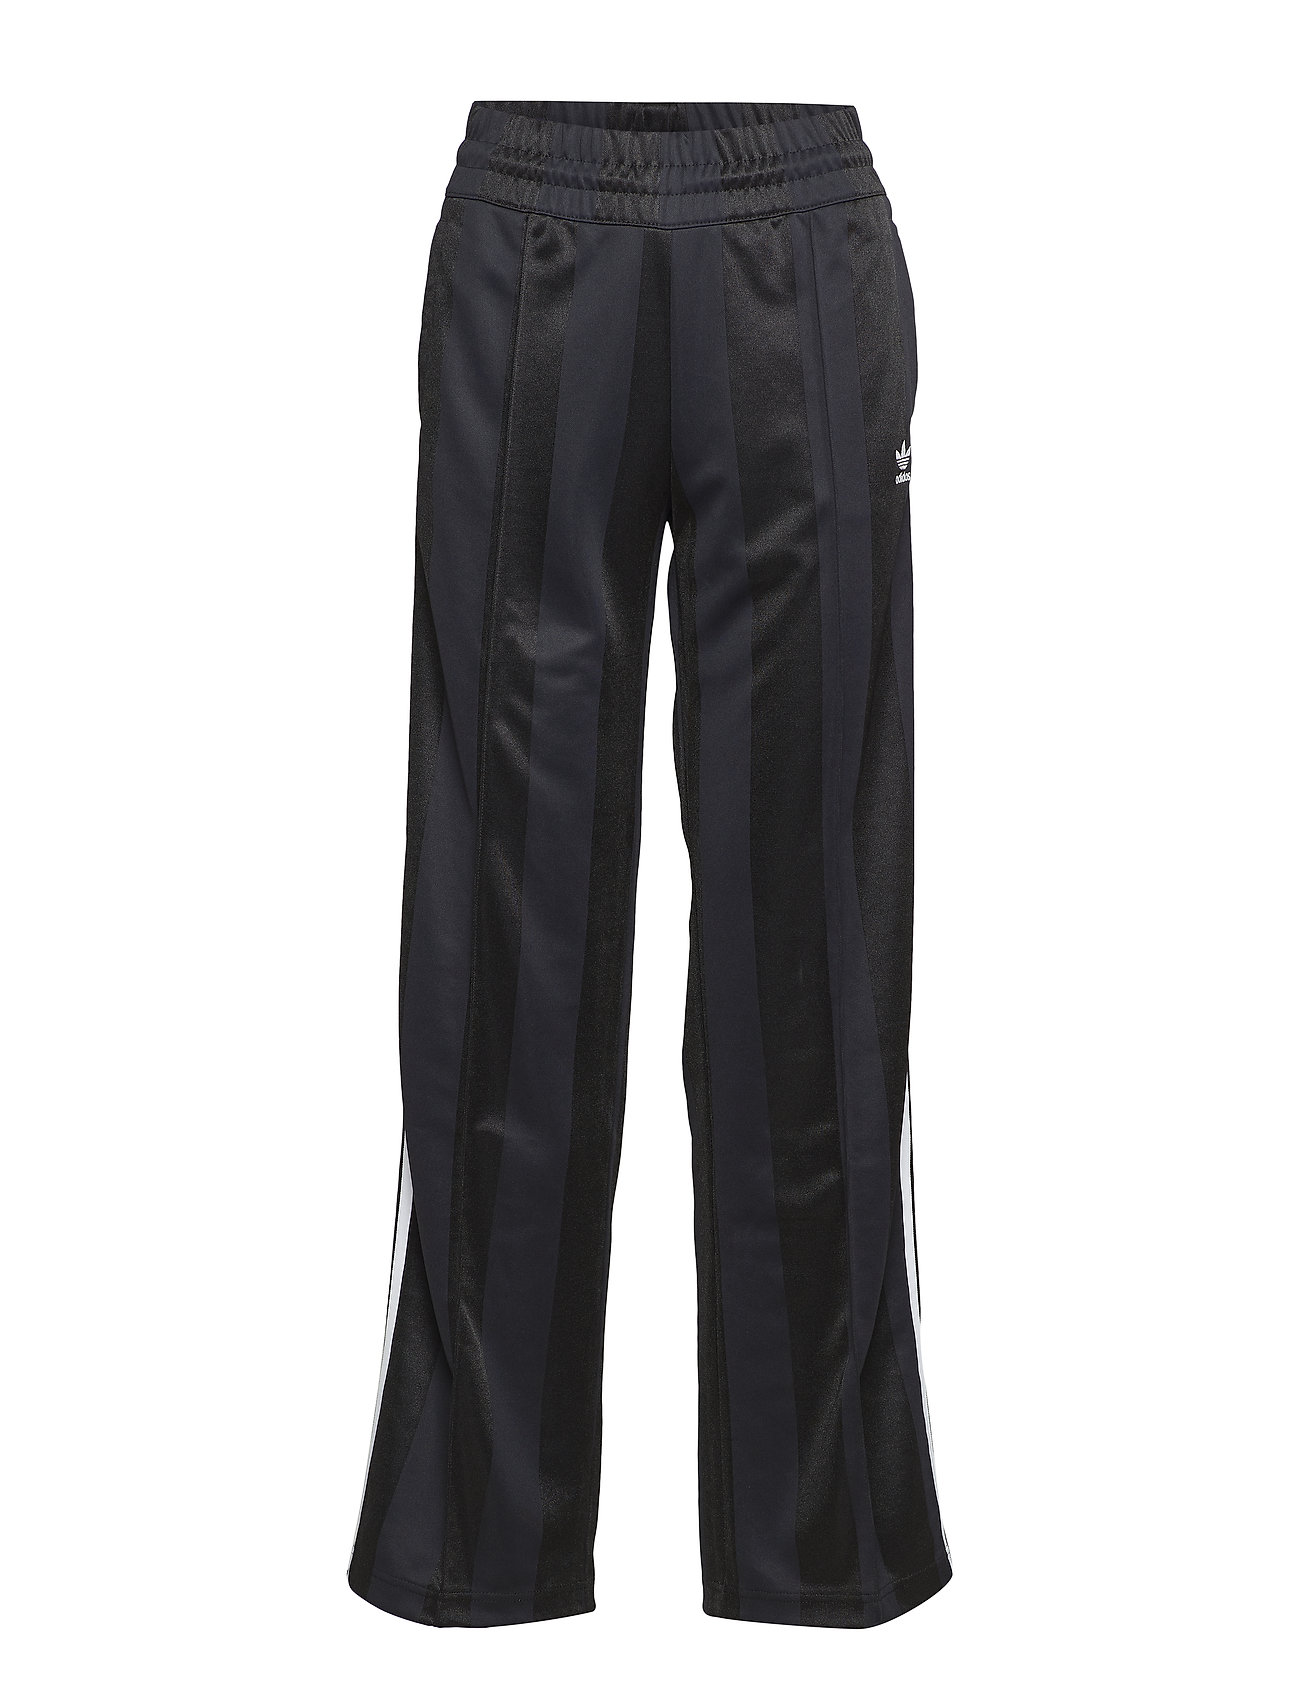 adidas Originals BB TRACK PANT - BLACK